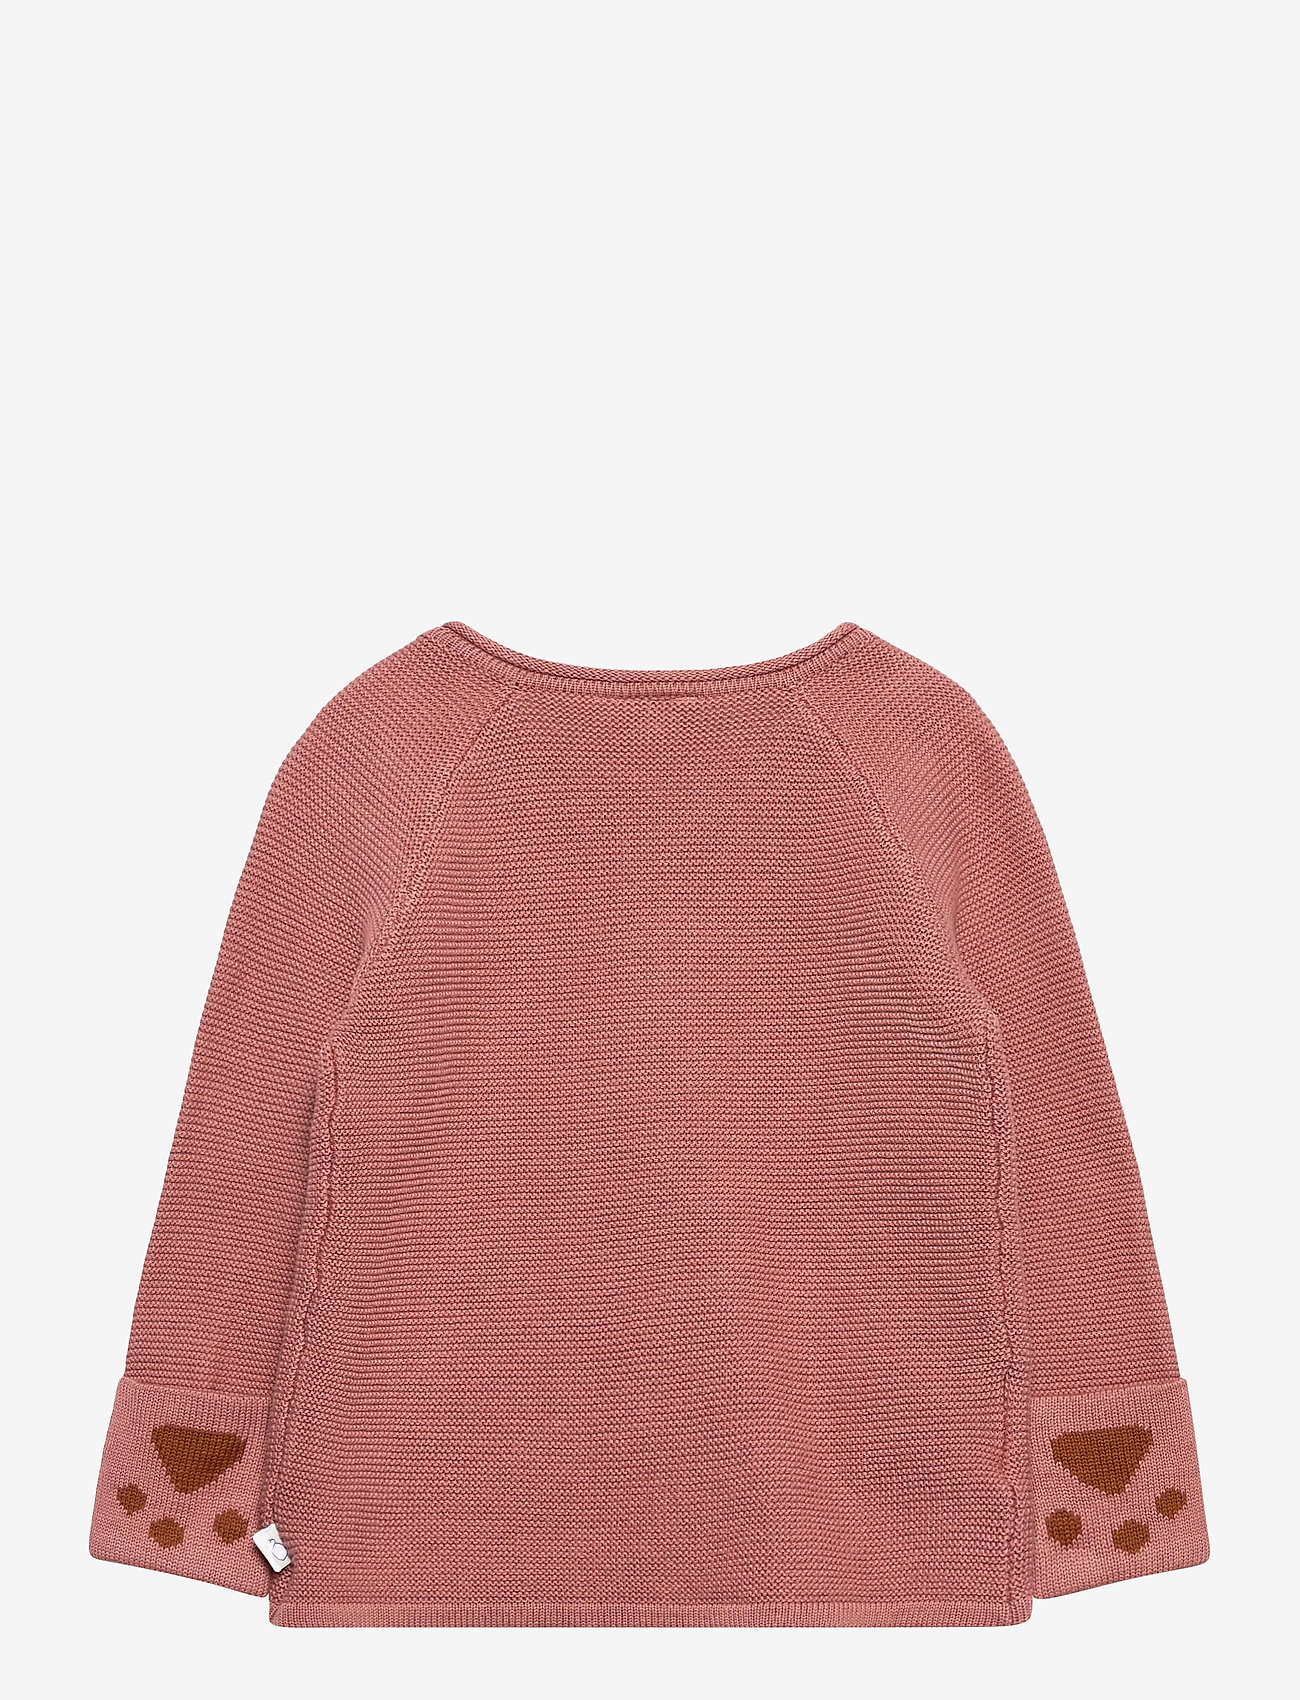 Hust & Claire - Cilla - Cardigan - gilets - old rosie - 1